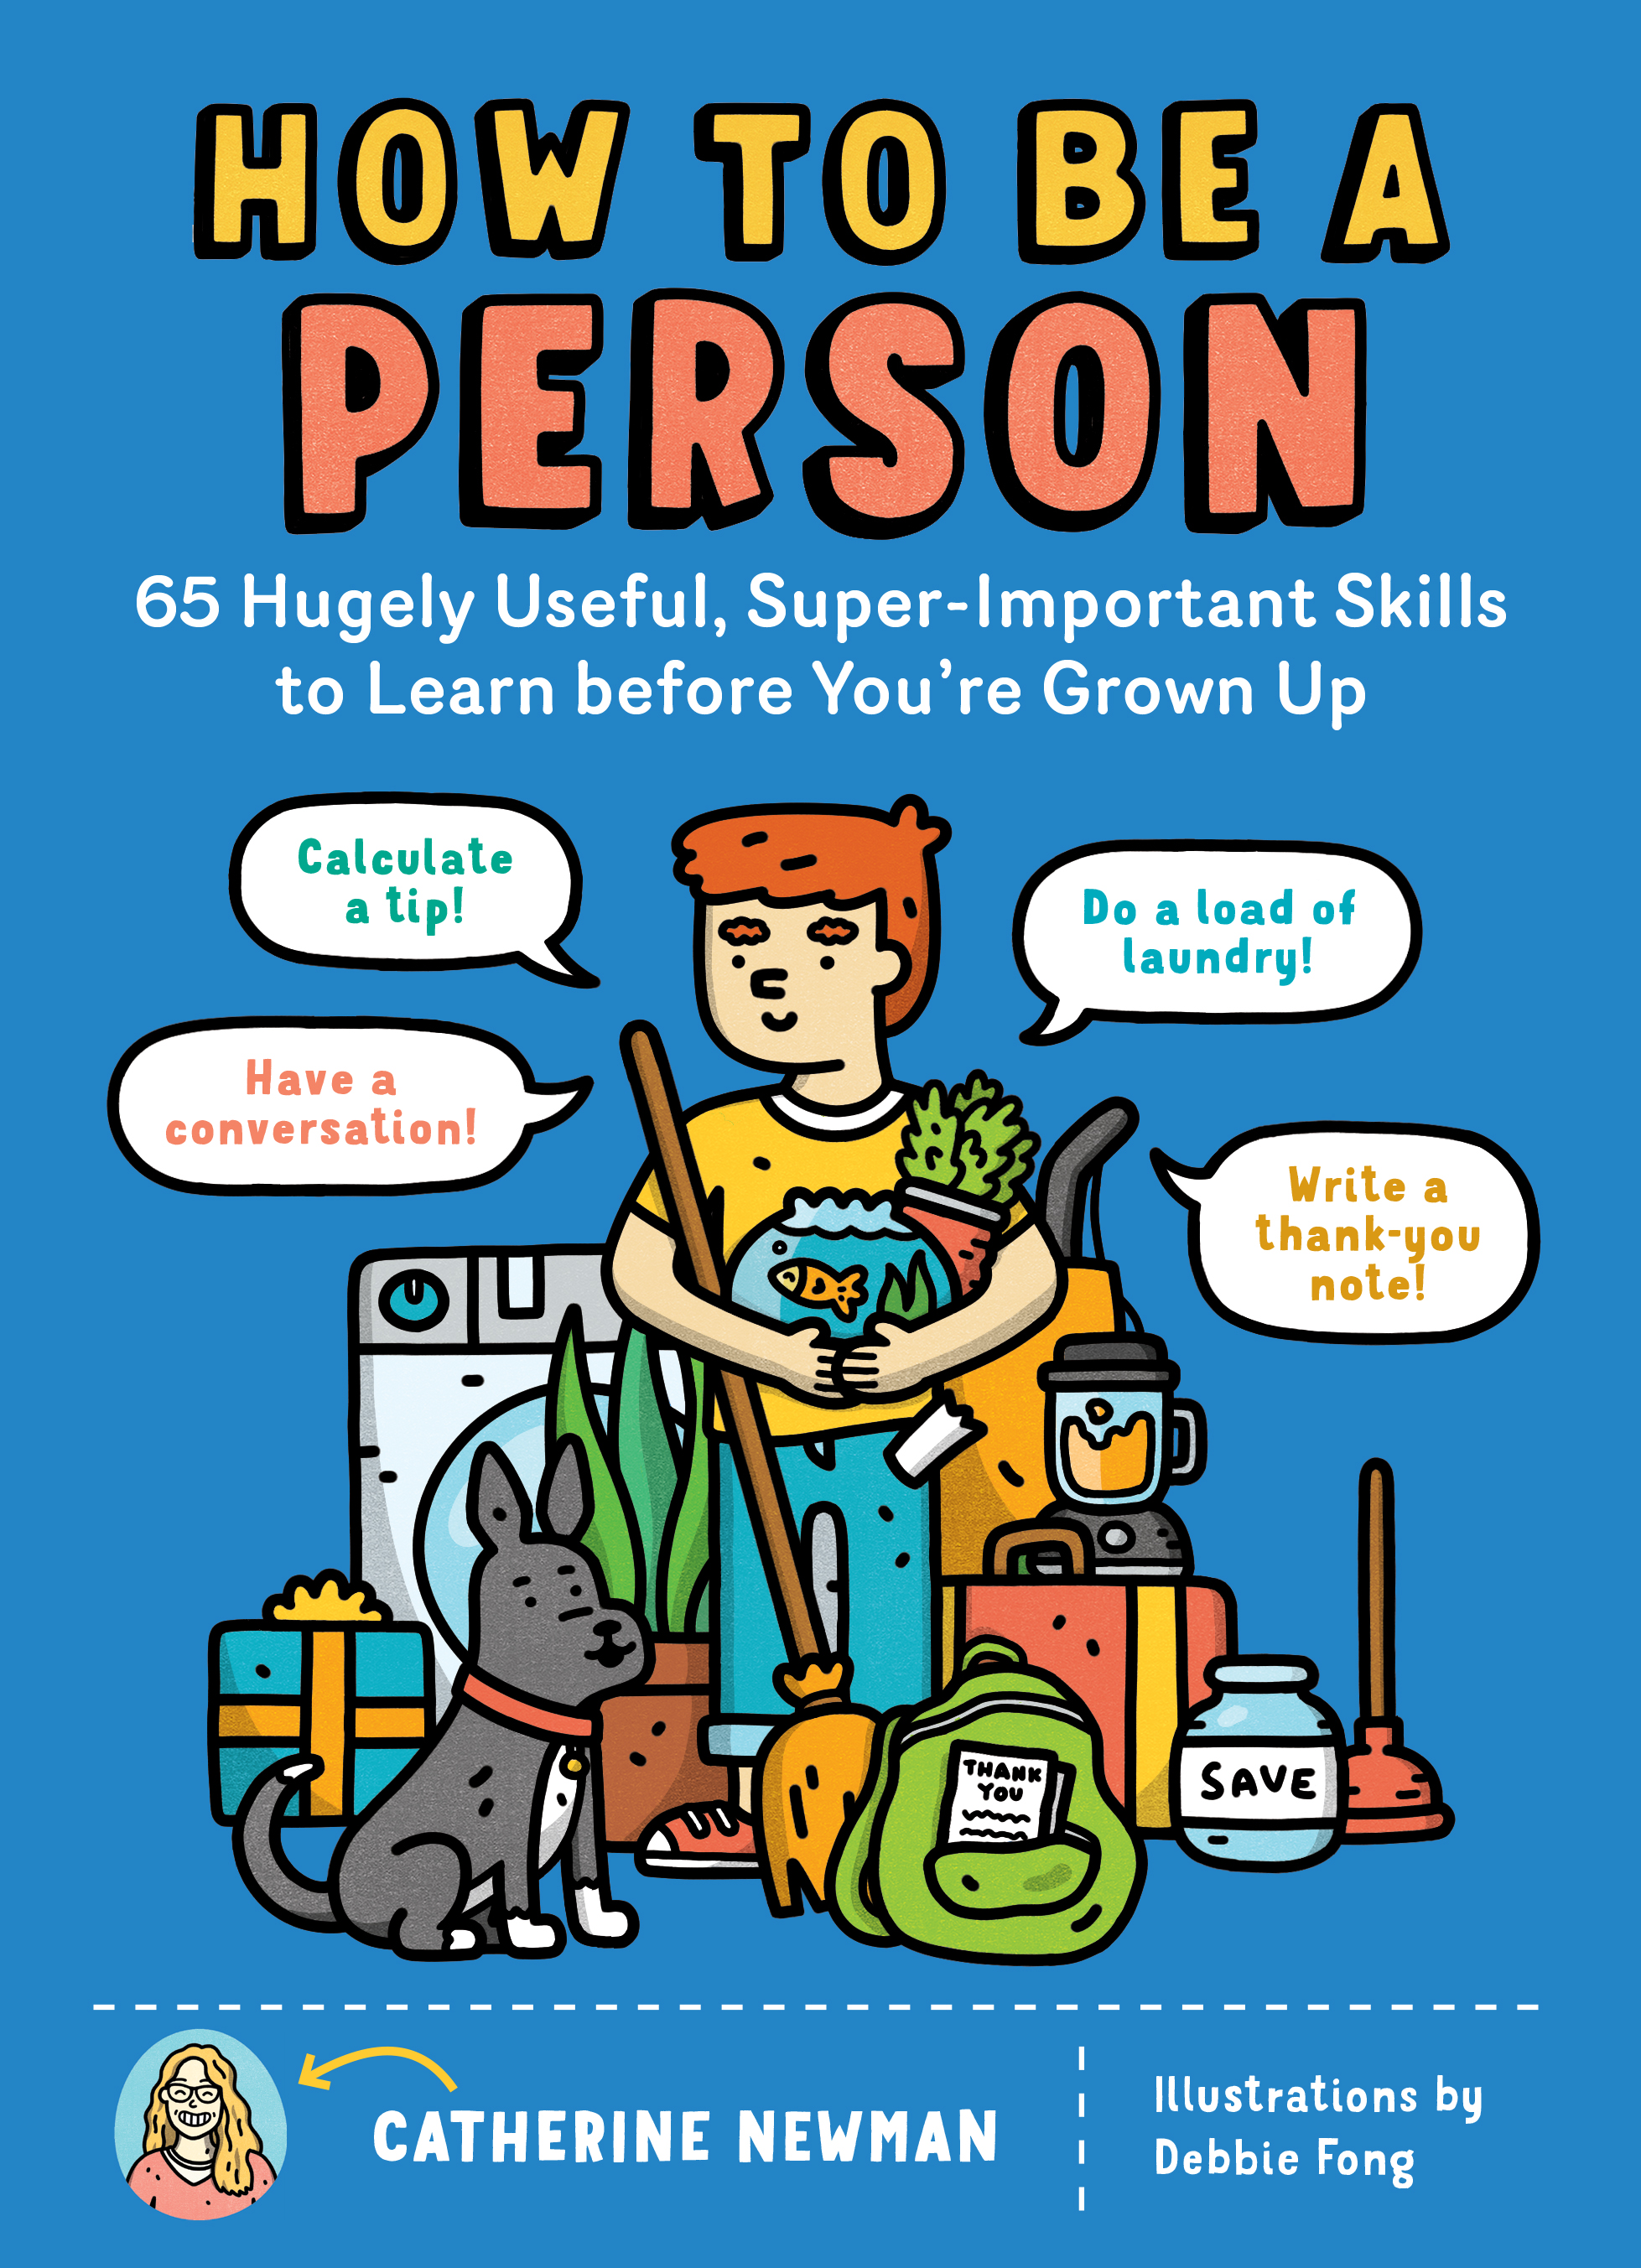 How to Be a Person 65 Hugely Useful, Super-Important Skills to Learn before You're Grown Up - Catherine Newman